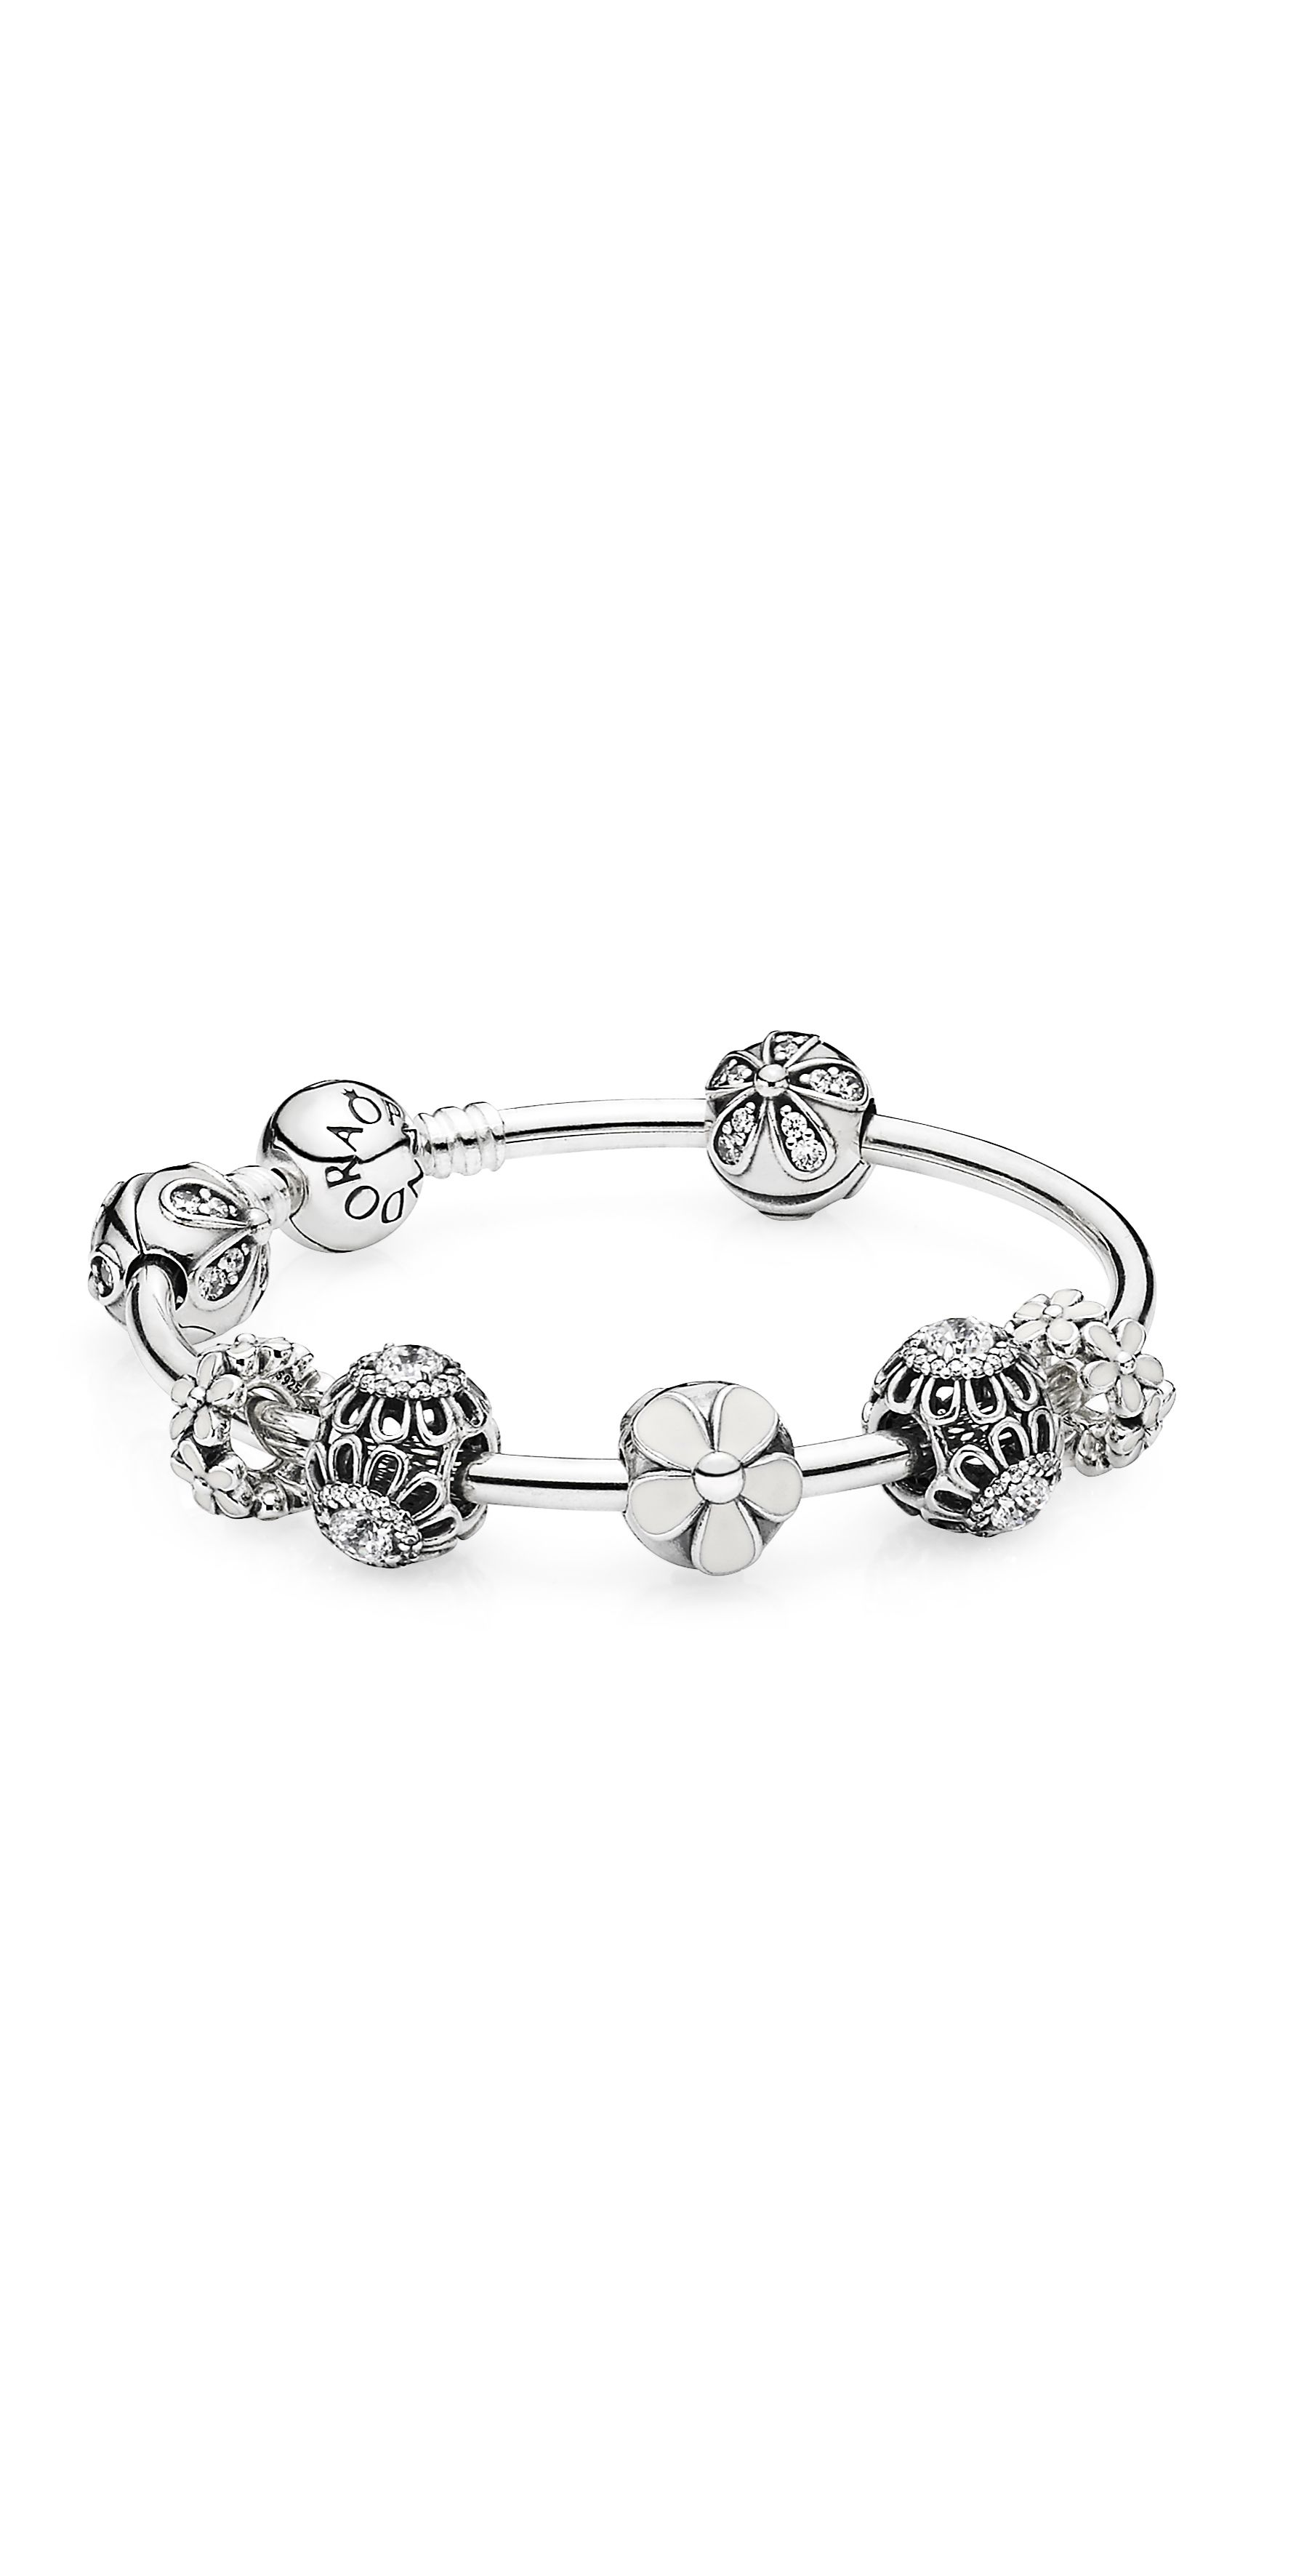 pandora bracelet bracelets online nz jdownloads silver dog charms index charm sam